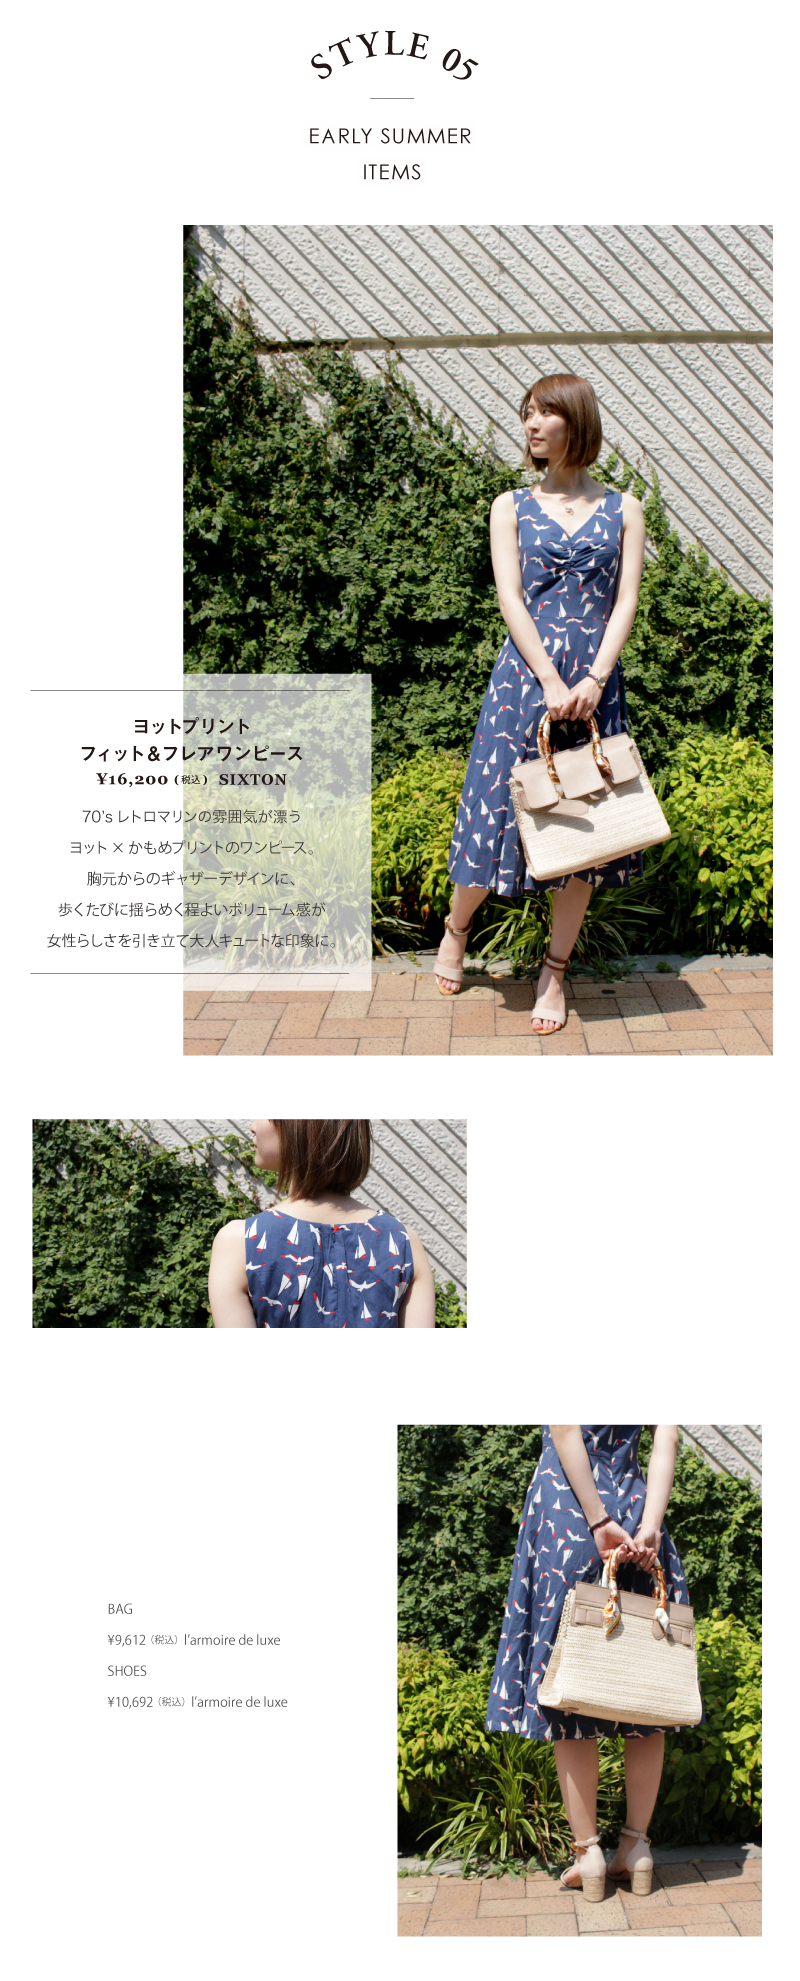 ac-RC_160526_earlysummer-item_vol3_05.png